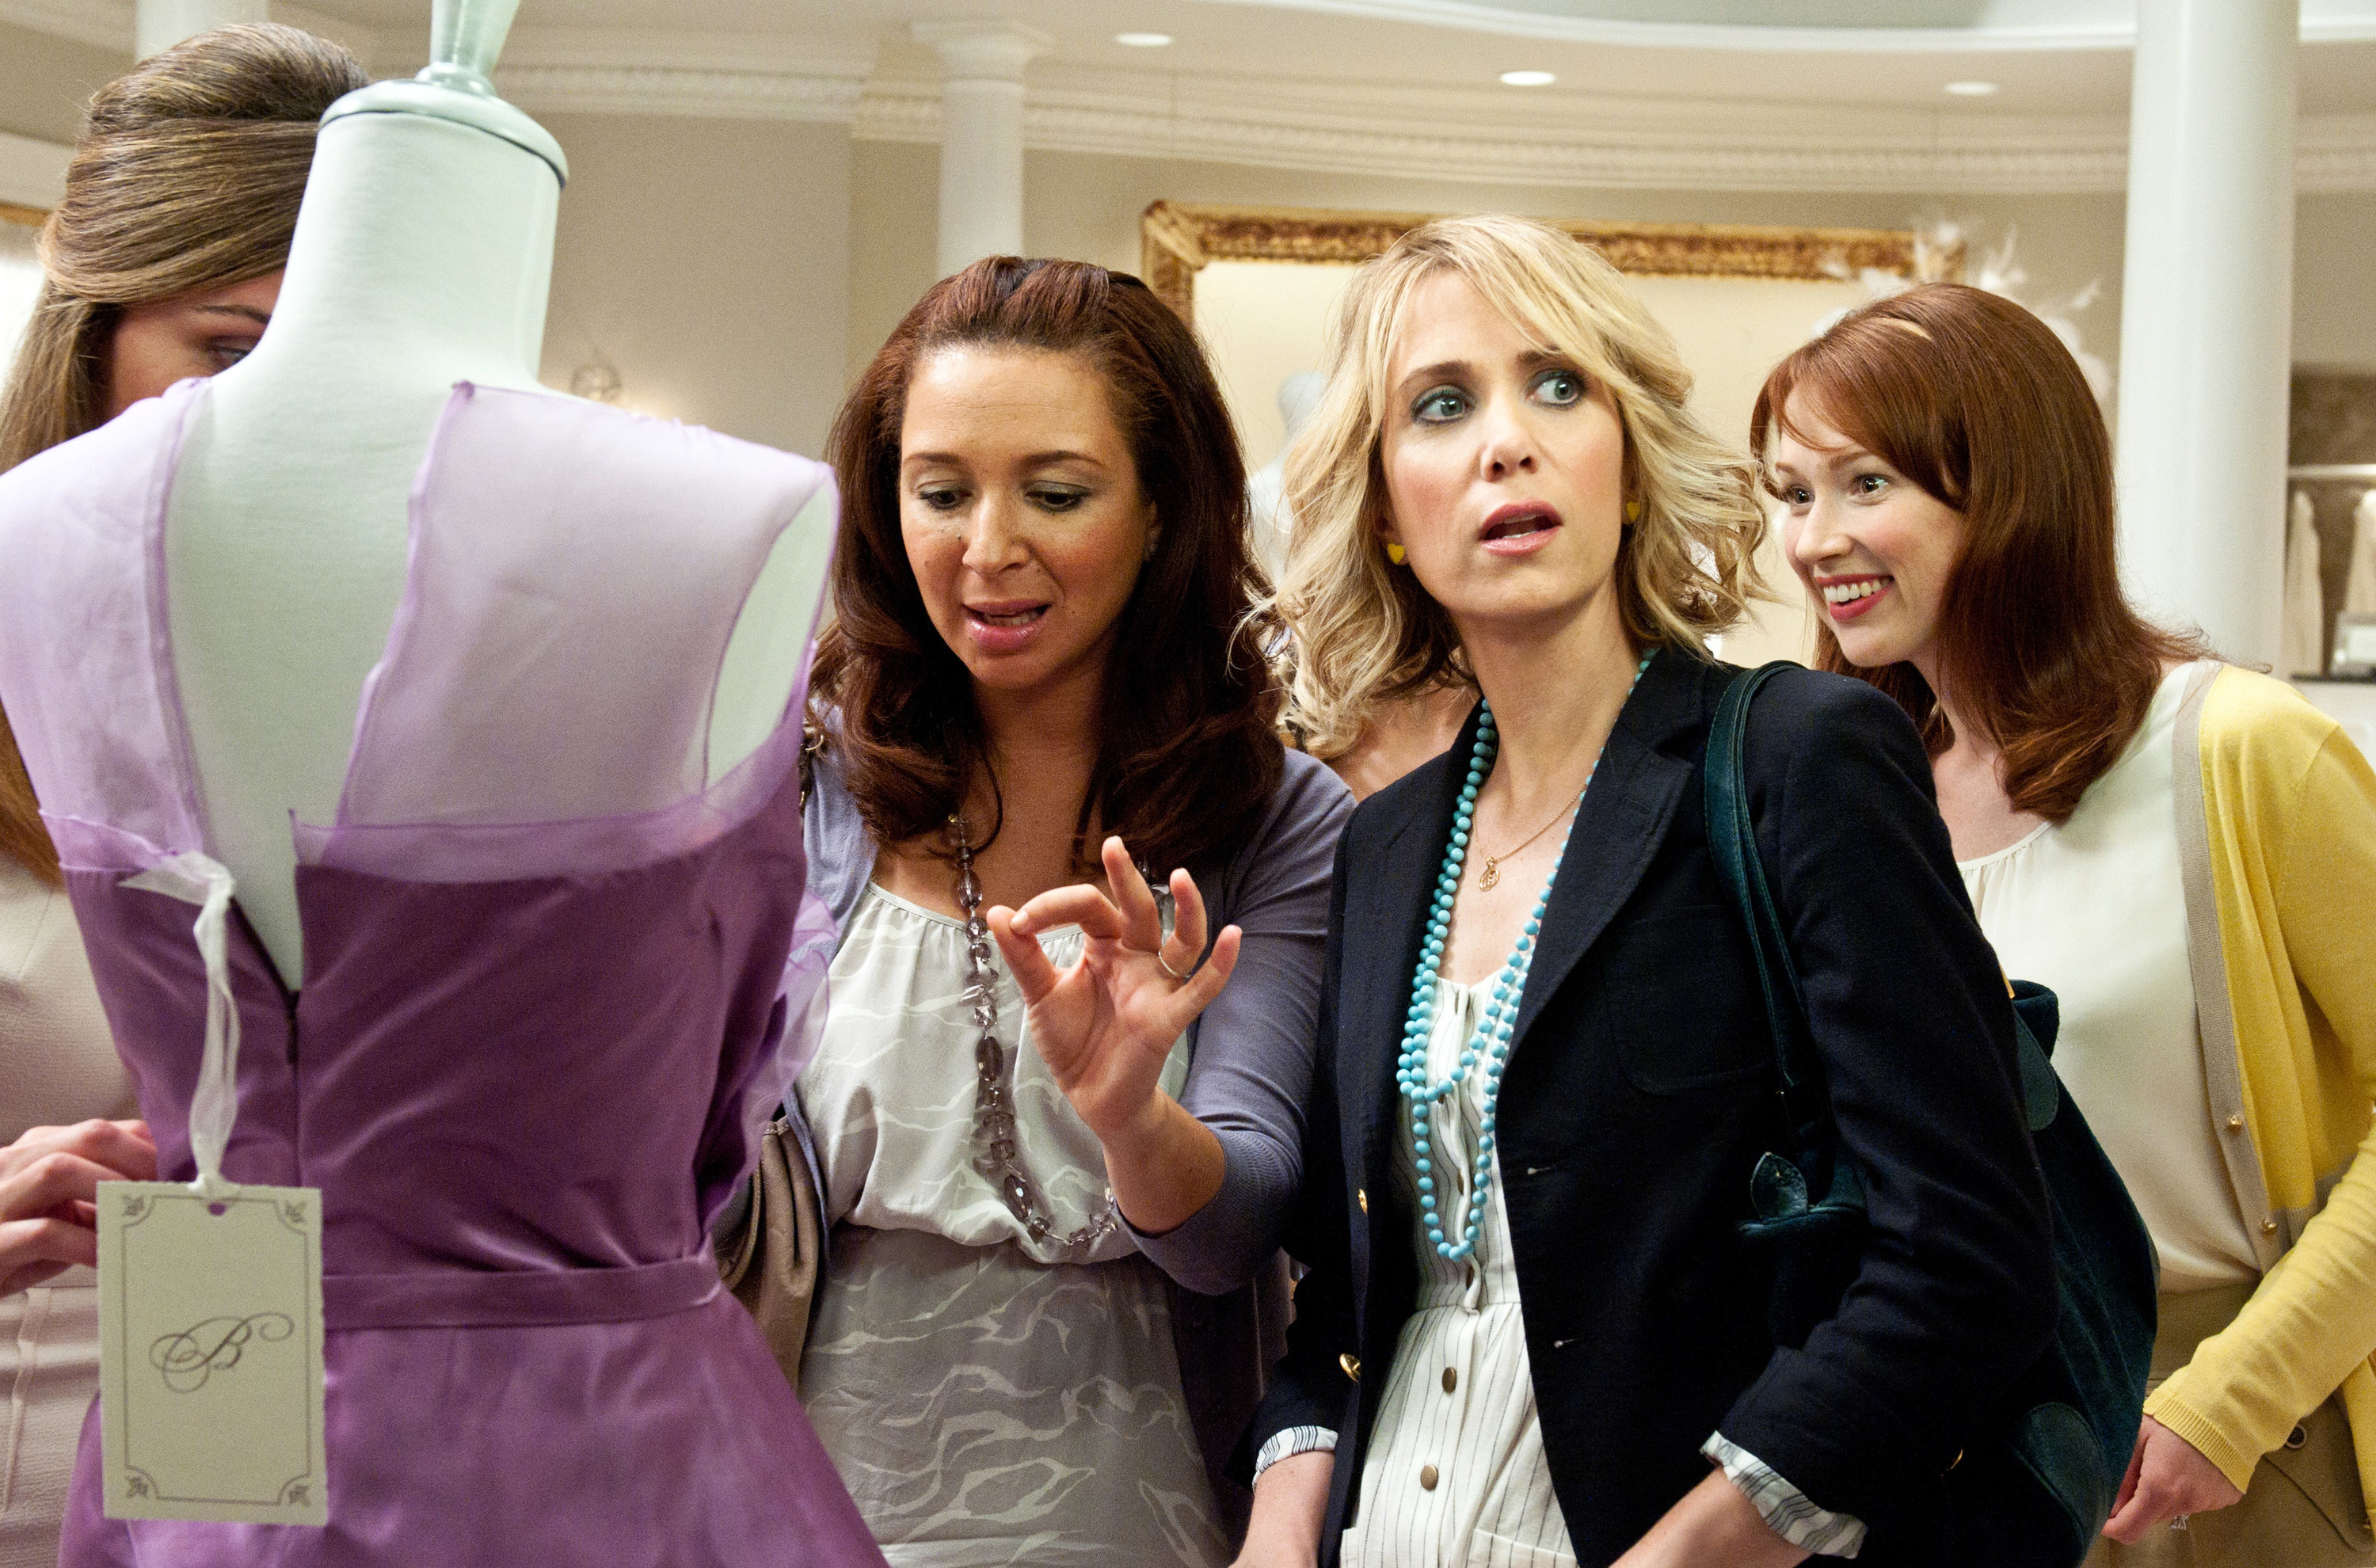 Rose Byrne (obscured by a mannequin), Maya Rudolph, Kristen Wiig, Ellie Kemper looking at a dress in a bridal store